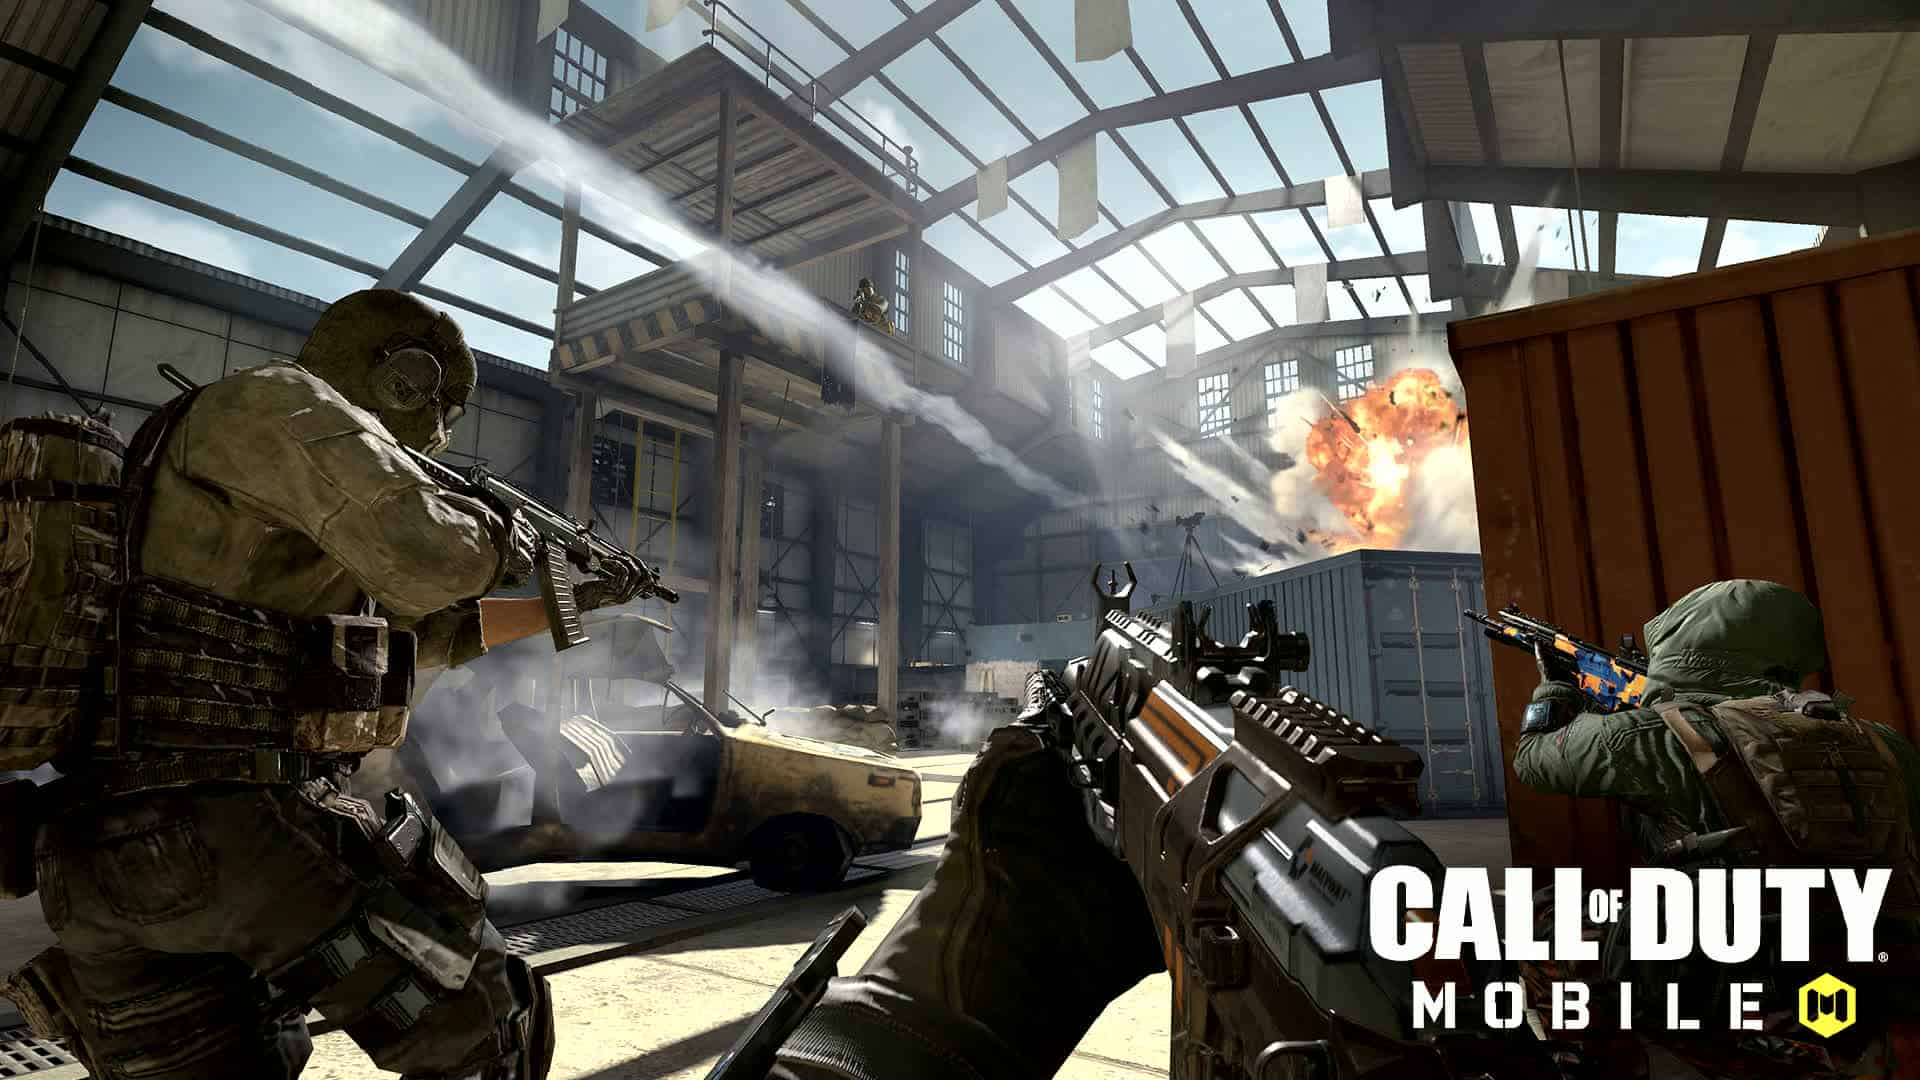 Call of Duty Mobile Download for Android & iOS - UCN Game -